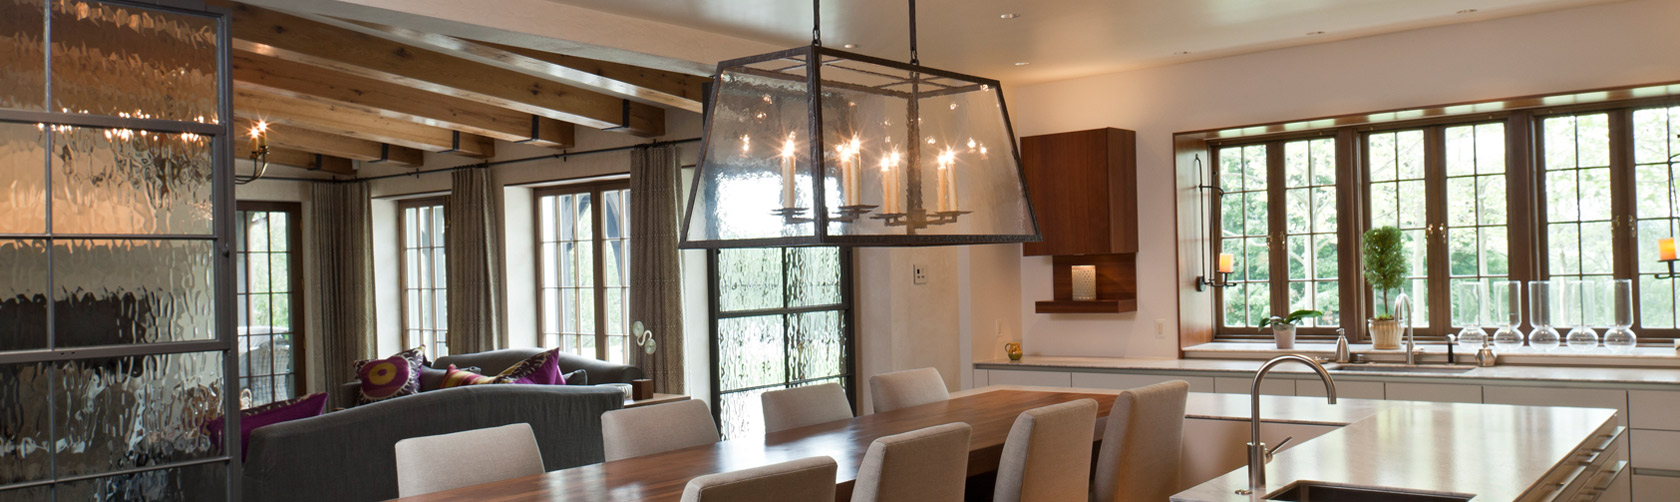 owingsbrothers baltimore kitchen remodeling Baltimore Home Building Remodeling We Specialize in Any Interior or Exterior Renovations Including Bath Remodeling Kitchen Remodeling Home Additions